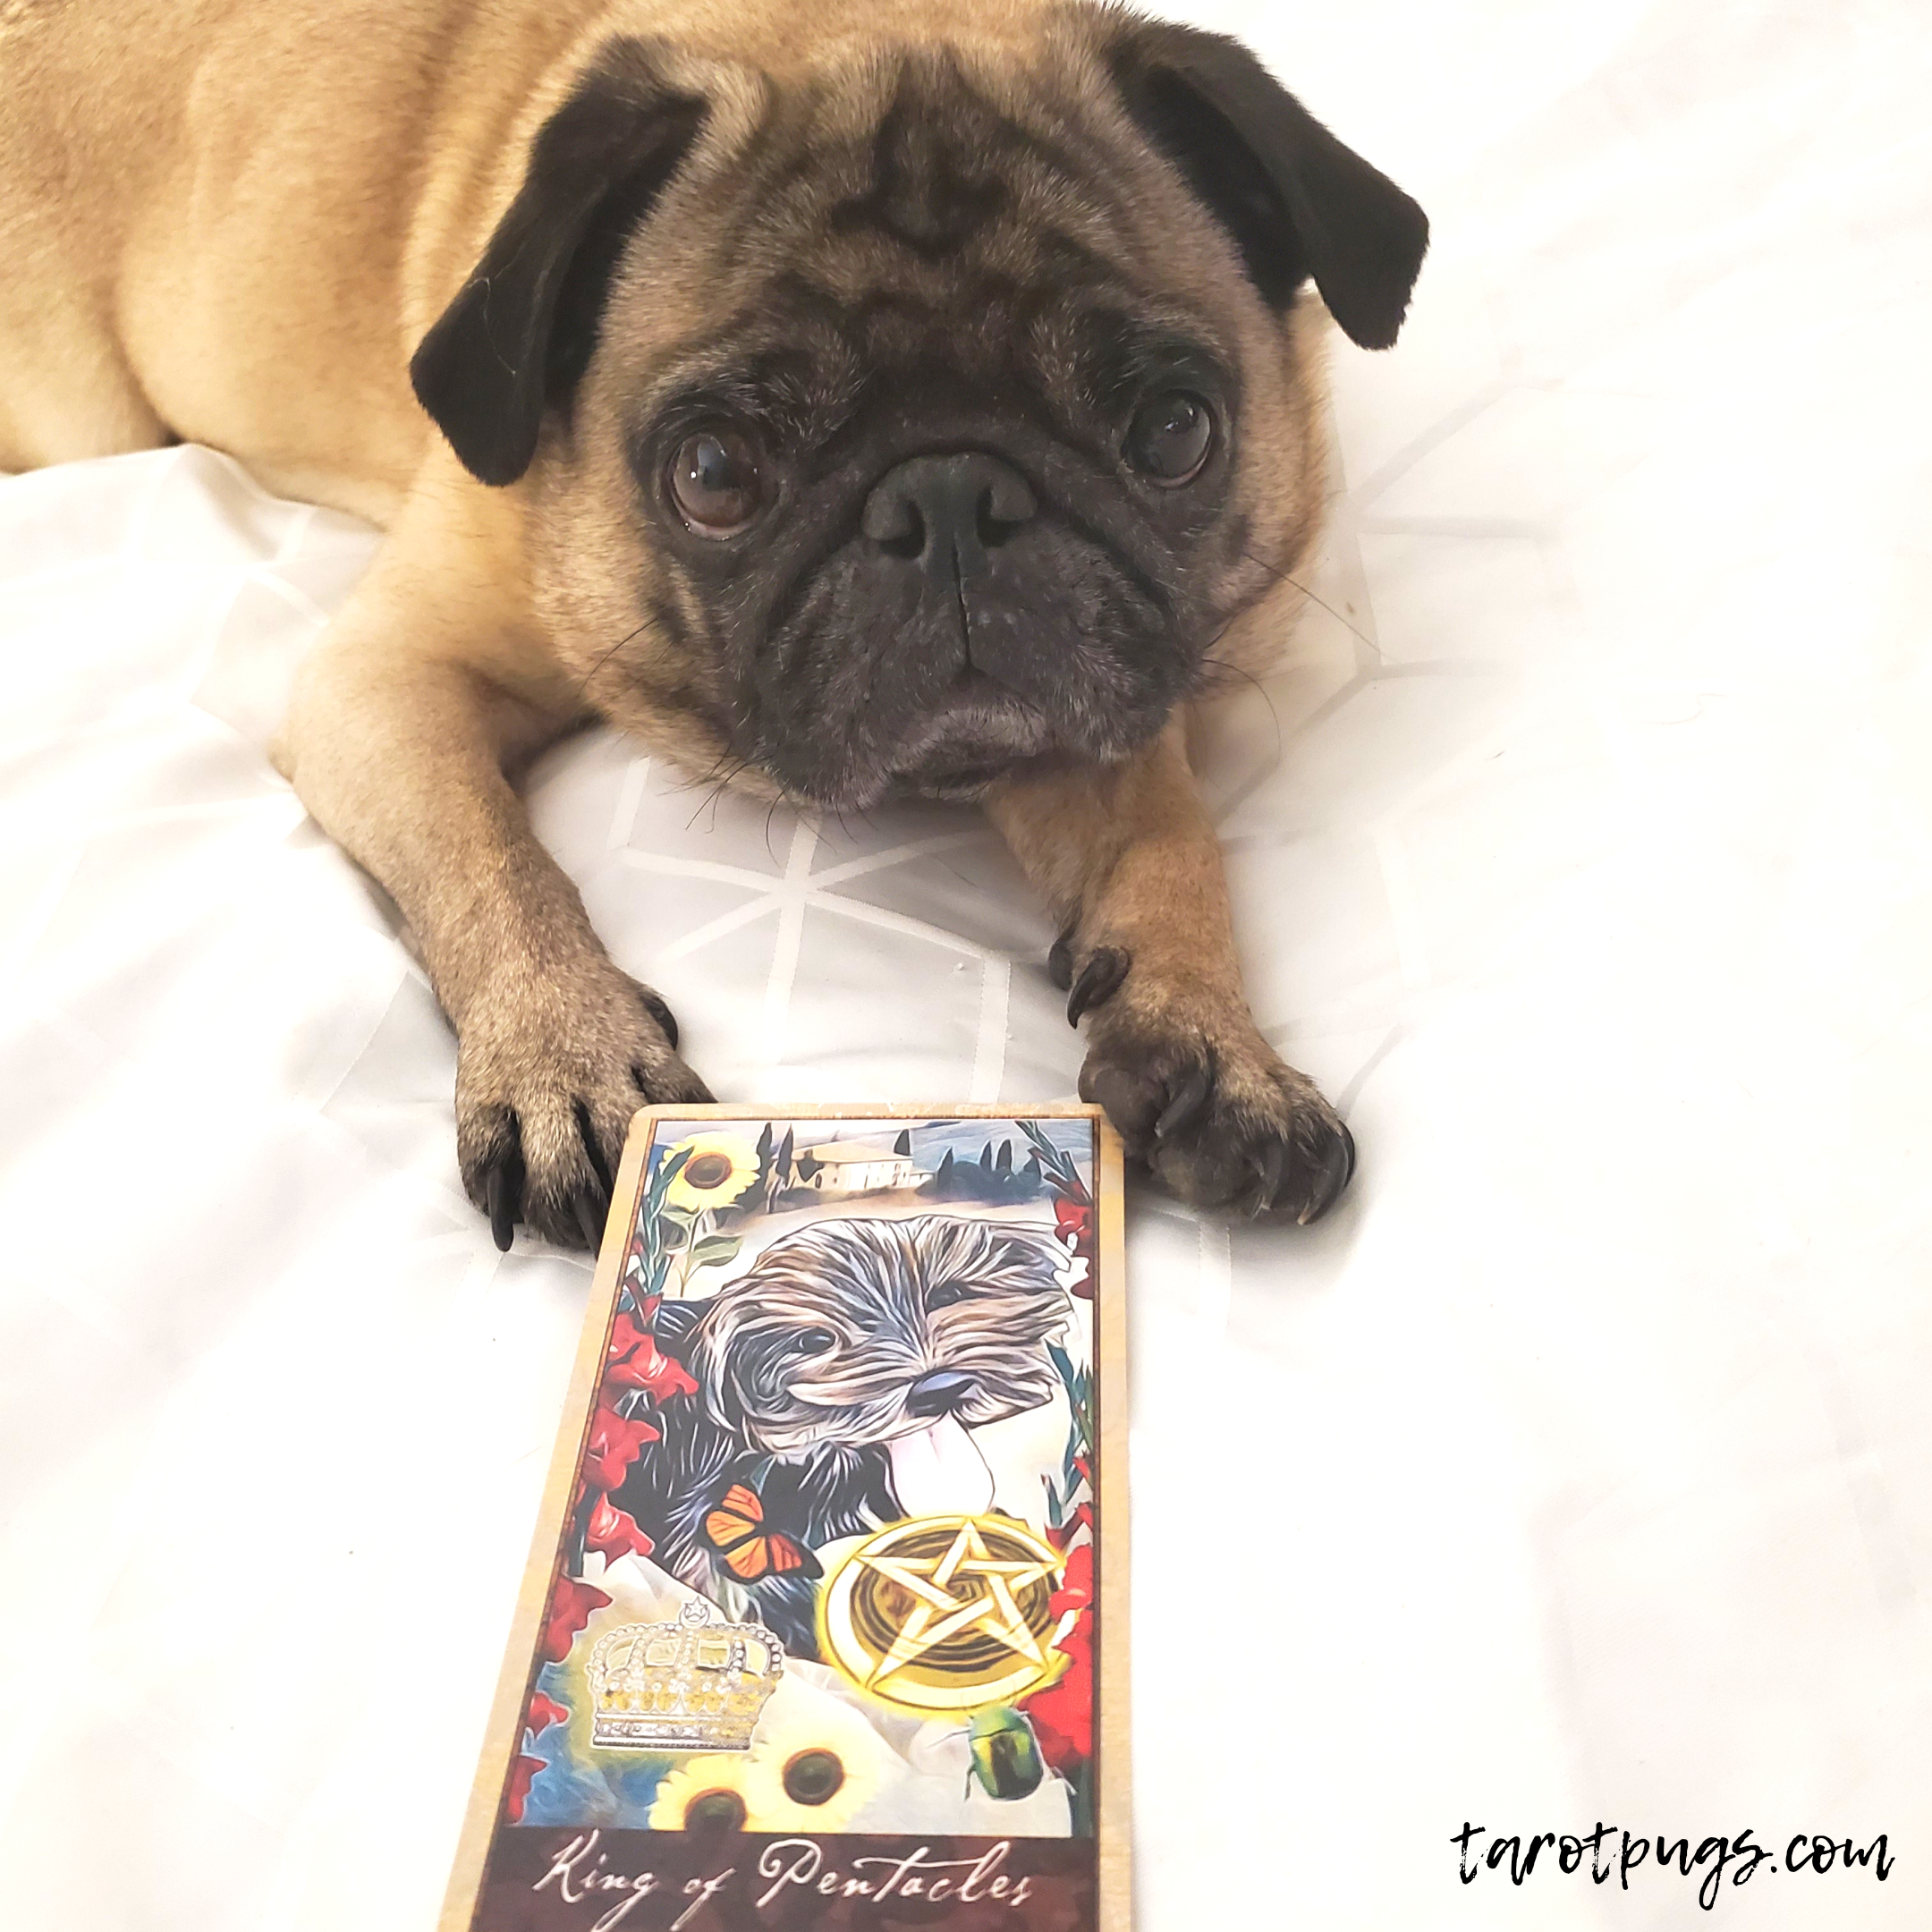 Tarot, Witchcraft and Pugs - TarotPugs